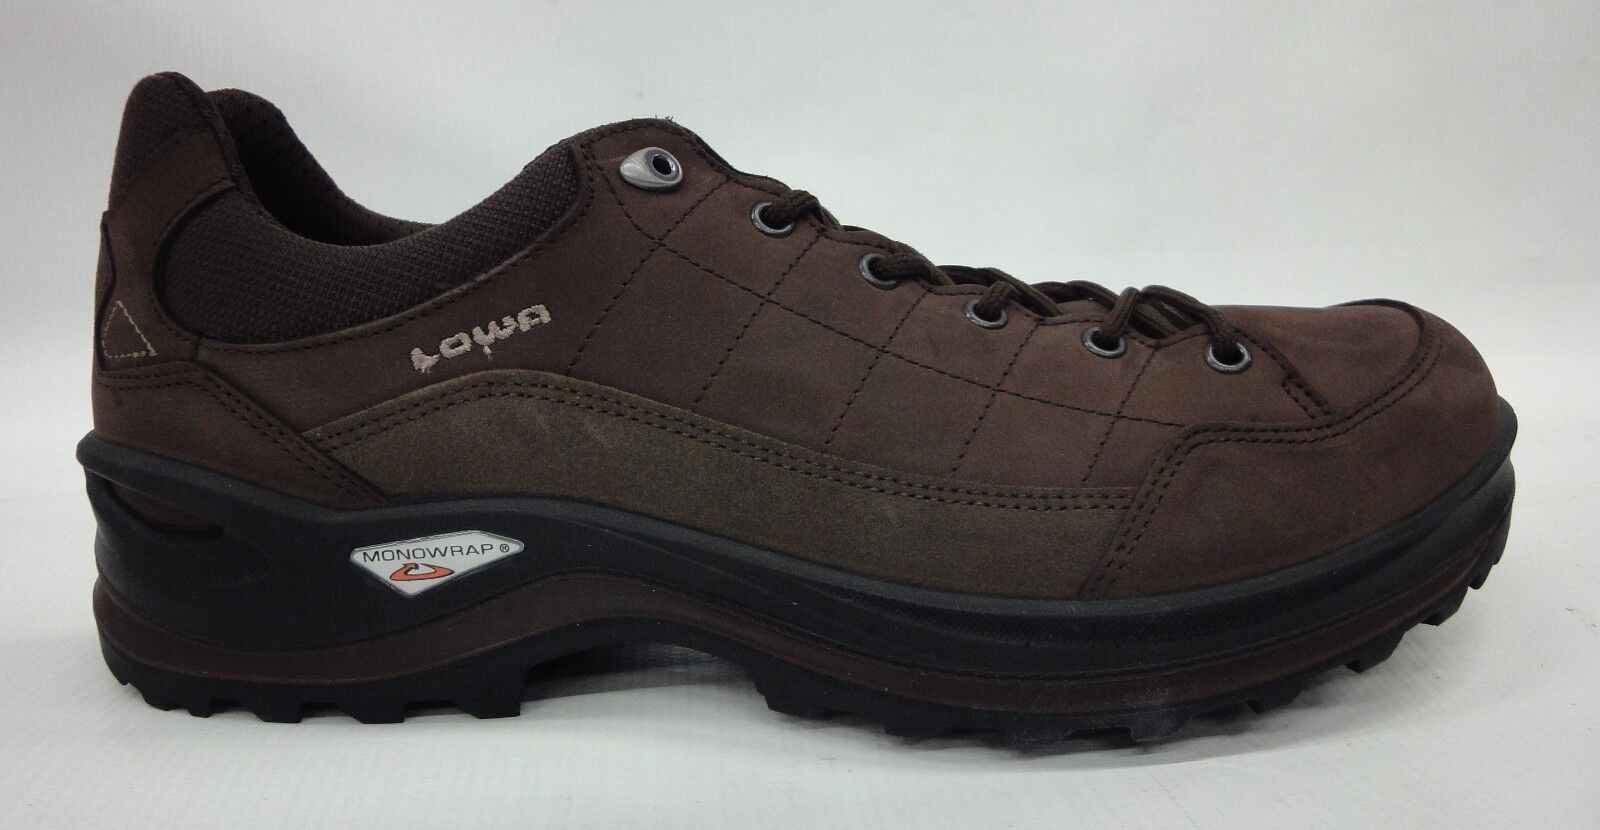 Lowa Mens Renegade III GTX Lo shoes 310960 4285 Espresso Brown Size 8